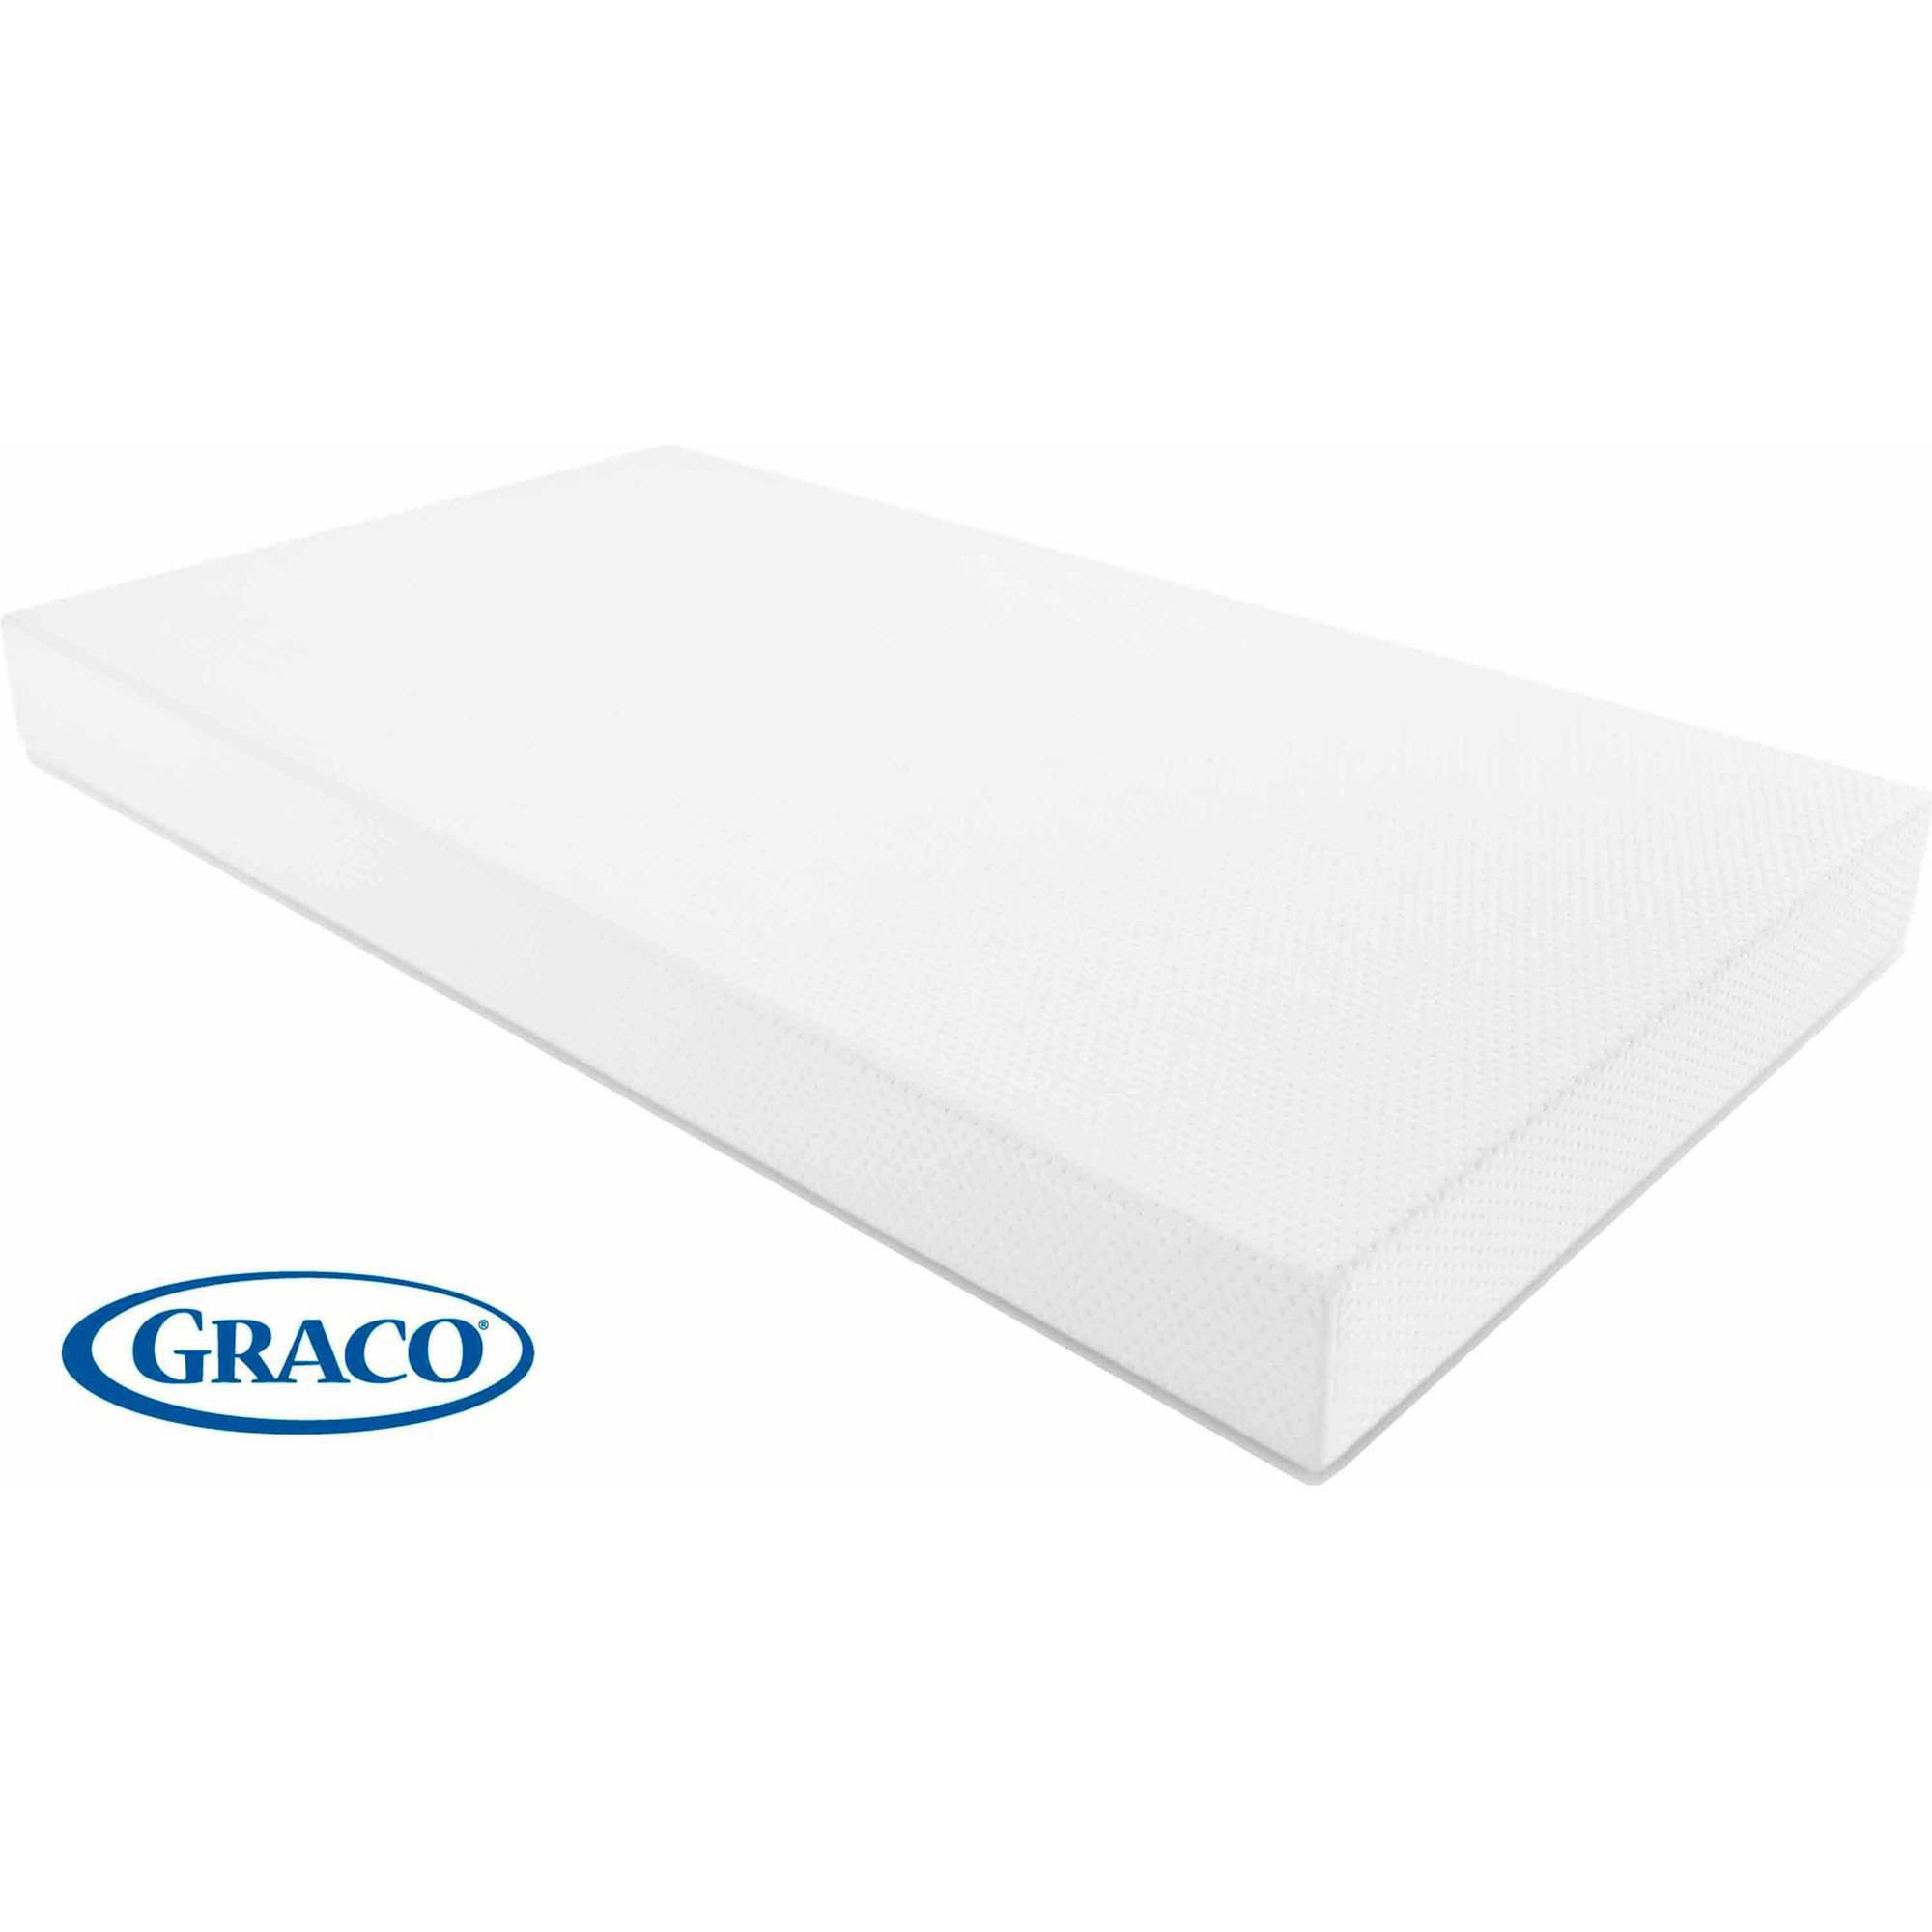 The Graco Premium Foam Crib And Toddler Bed